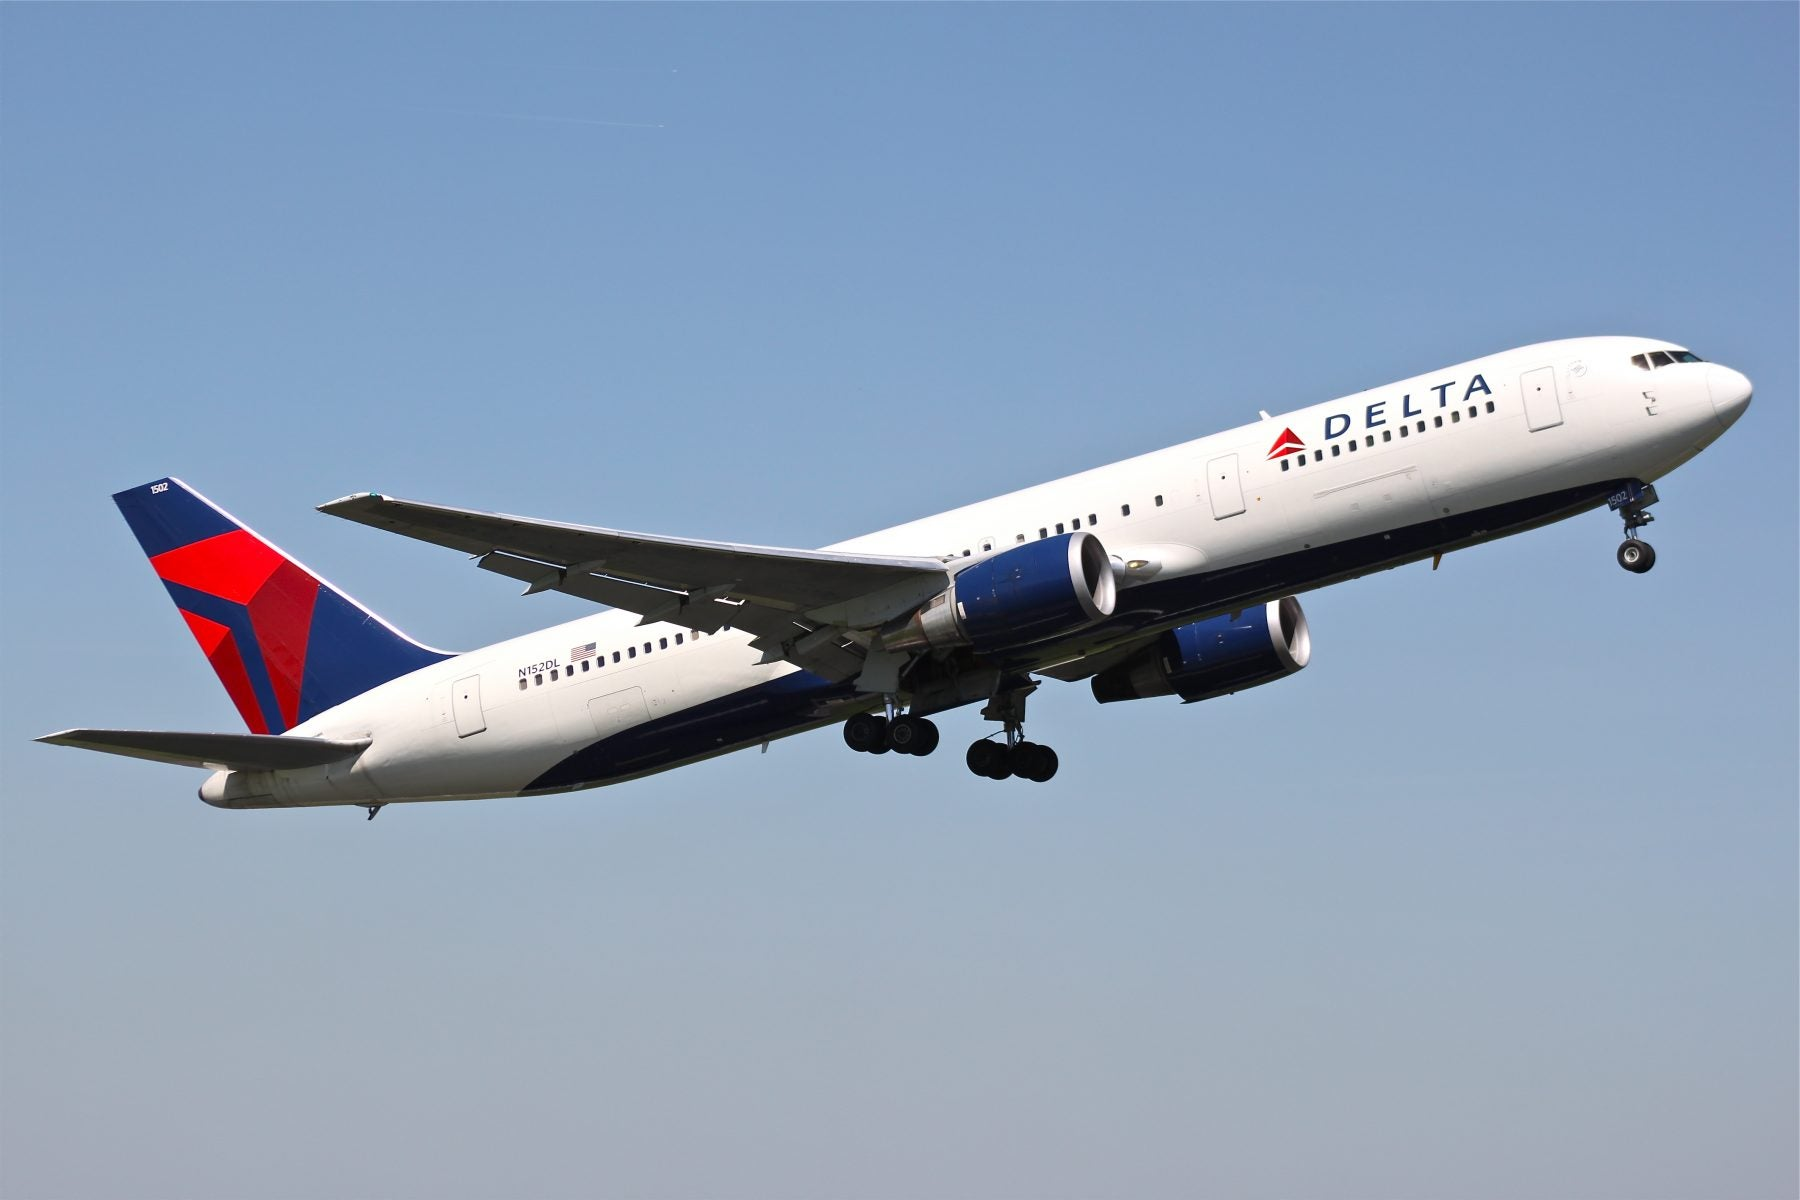 Delta award sale to Europe from 26,000 miles and domestic flights for under 10,000 miles